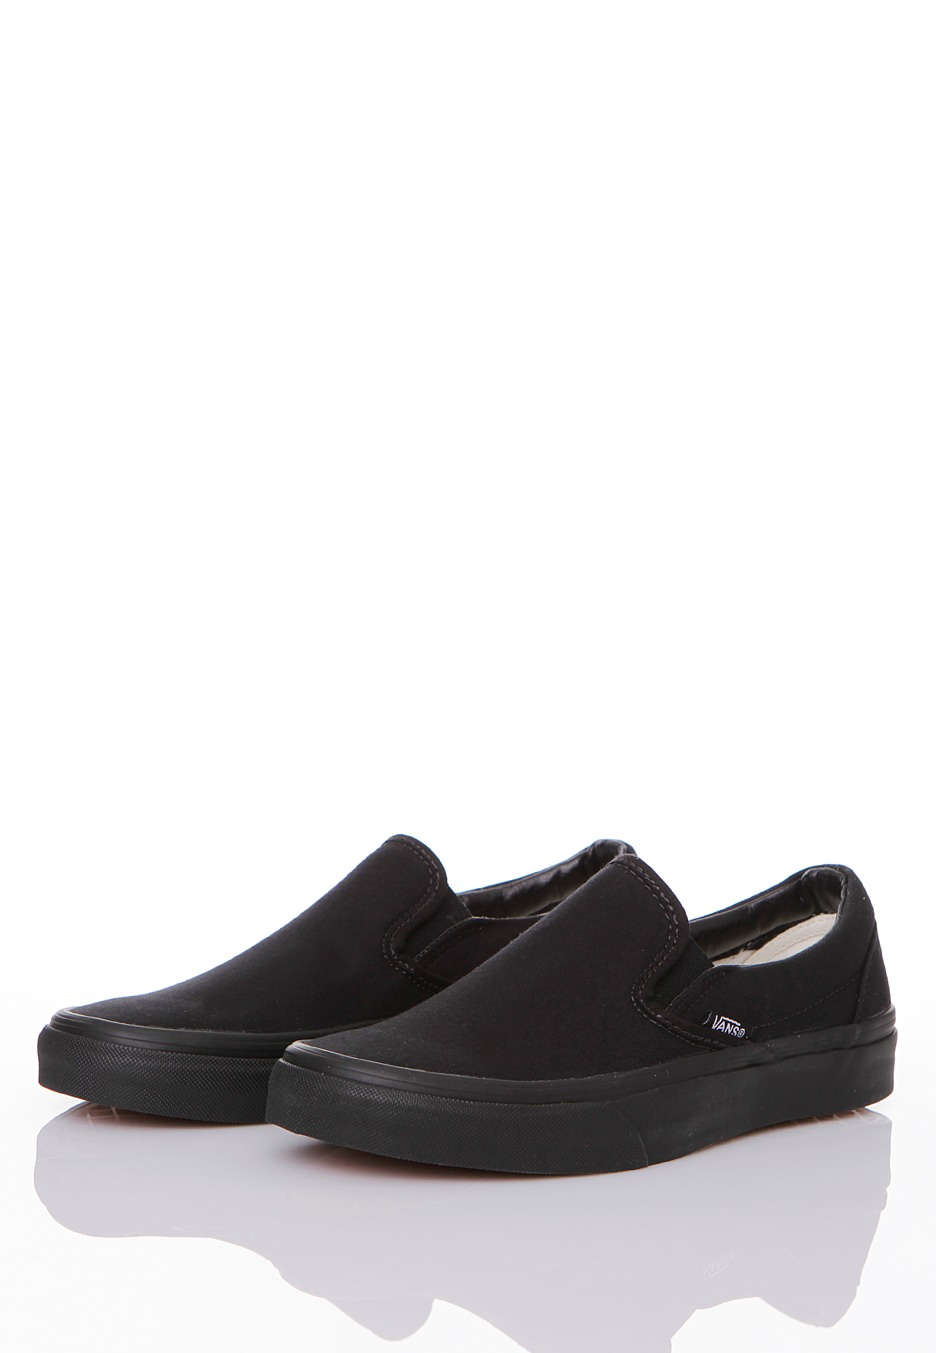 ZZPOHE Women shoes Spring soft soled mother black single